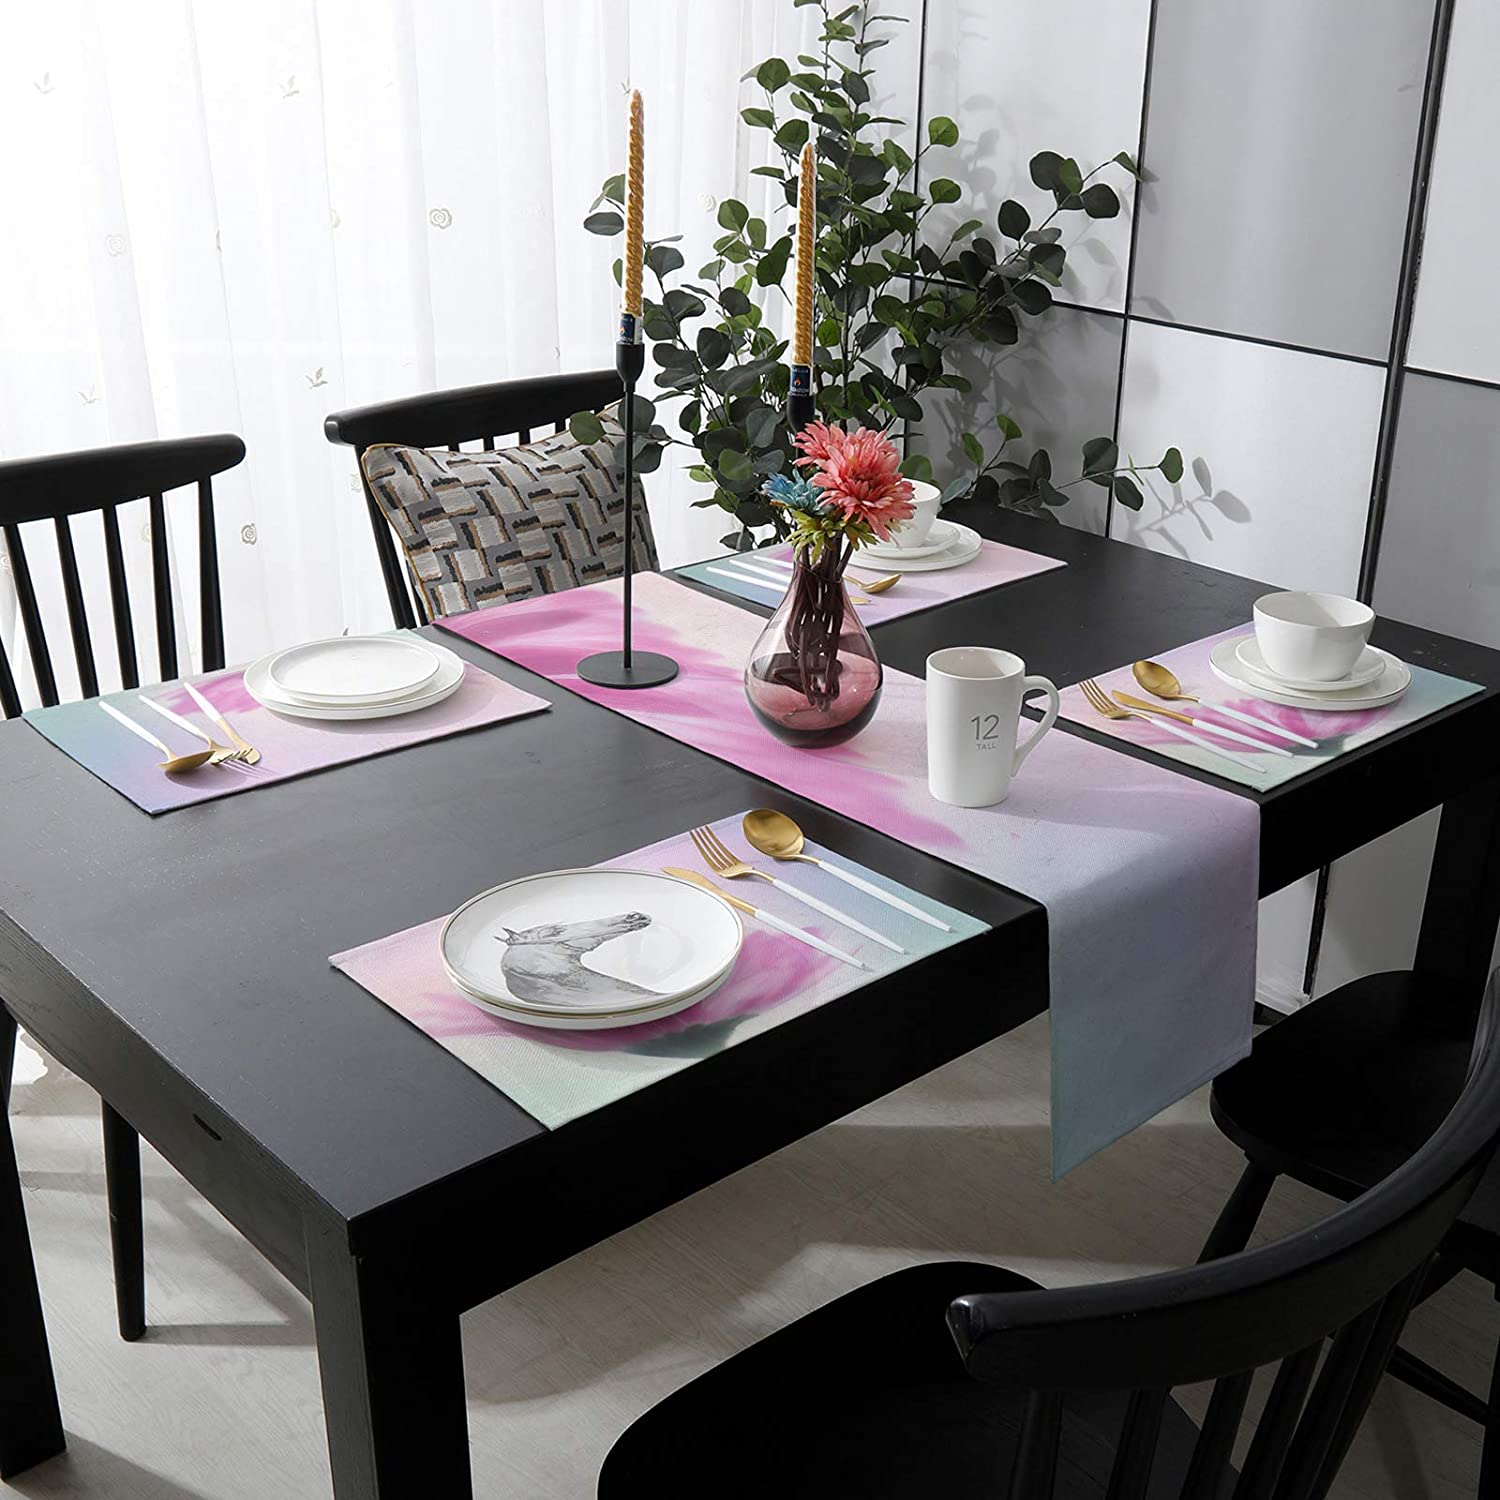 Outdoor Table Runner and 4 Houston Mall Kitchen Placemats Cotton Heat-Proof Las Vegas Mall